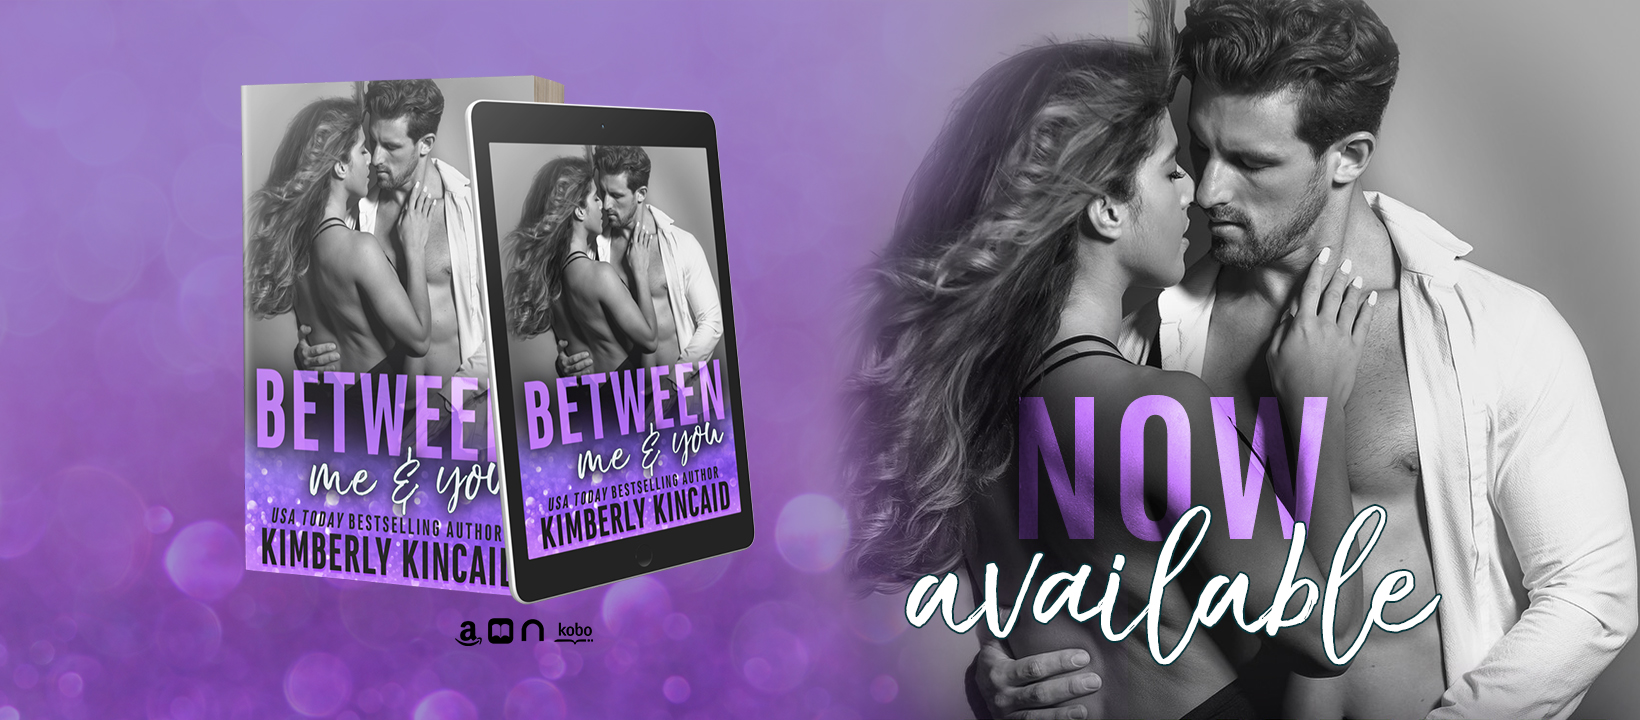 Between Me & You by Kimberly Kincaid